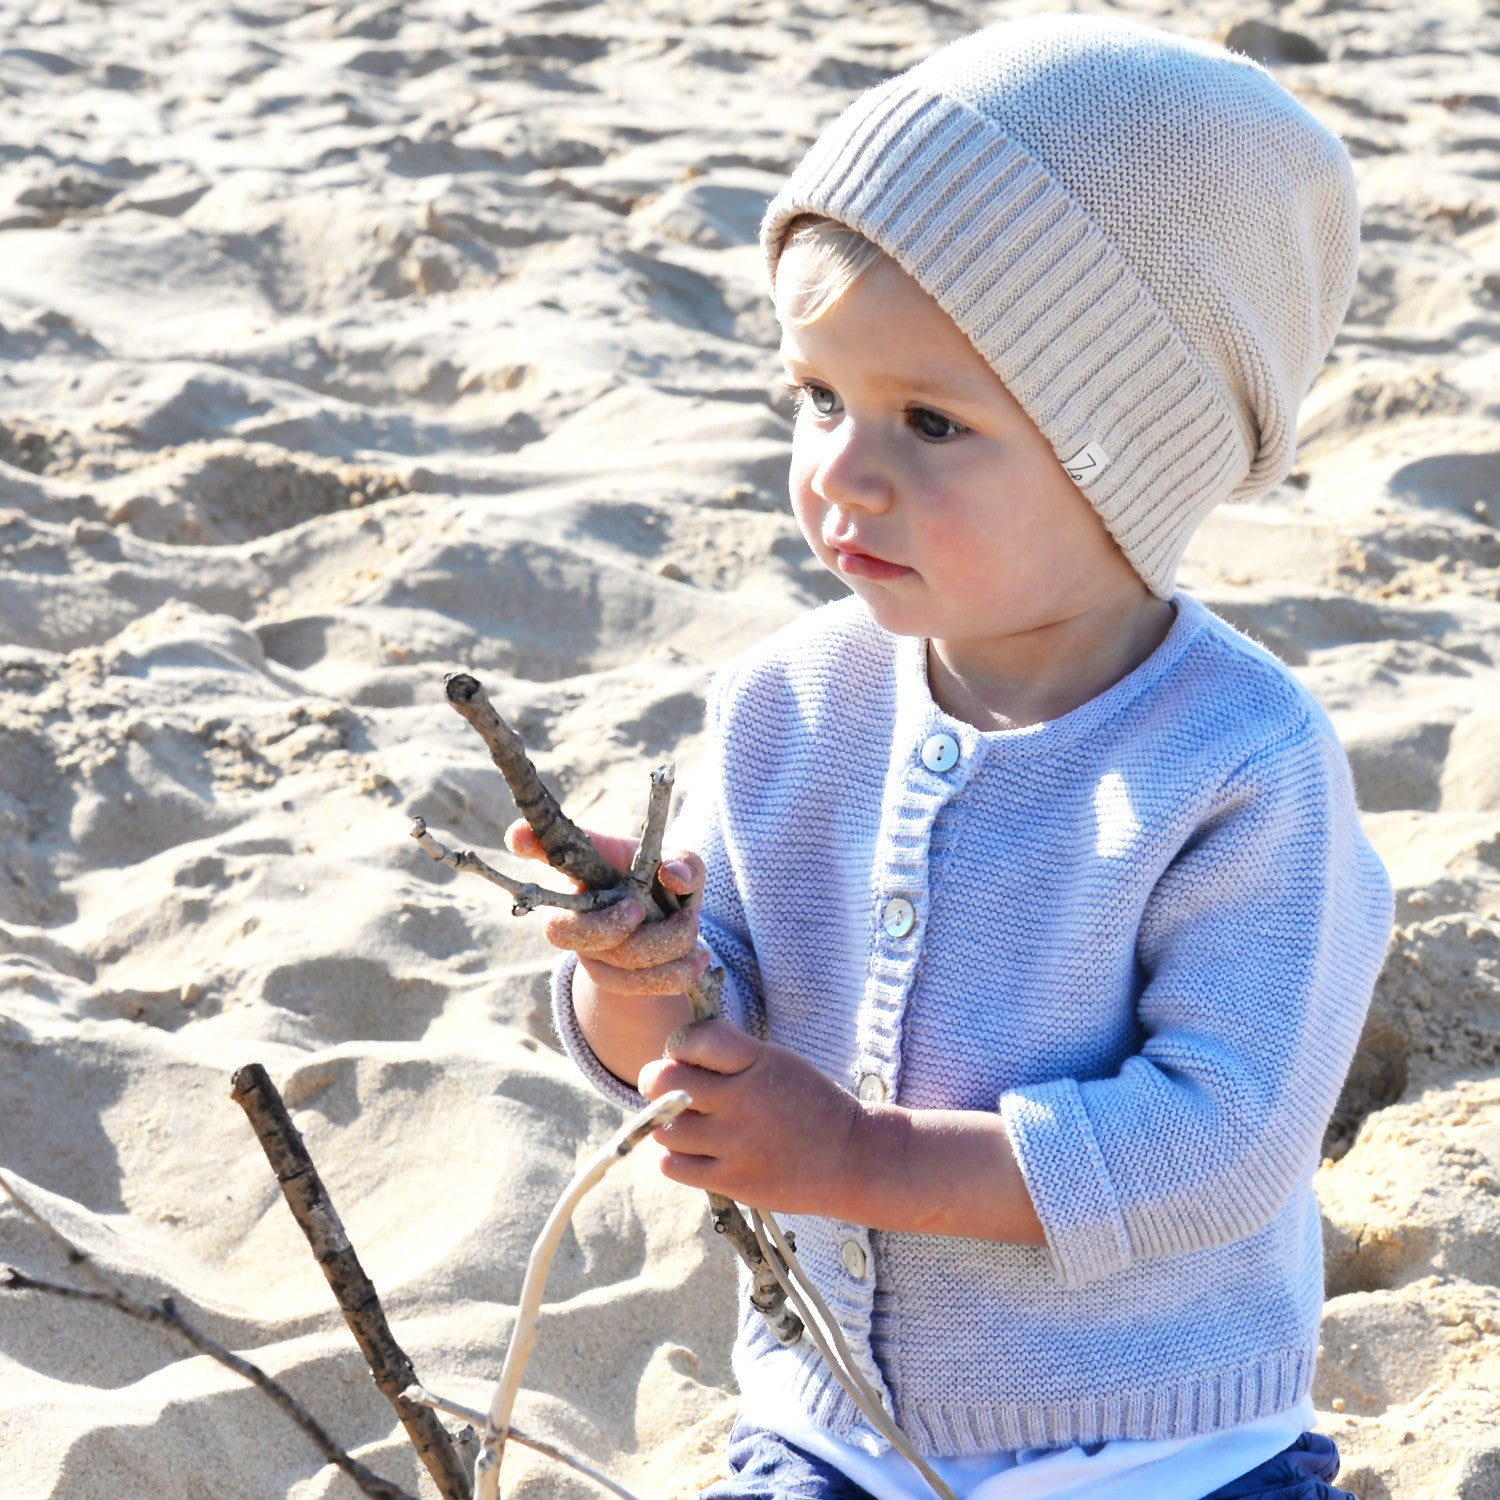 girl on beach in oatmeal beanie